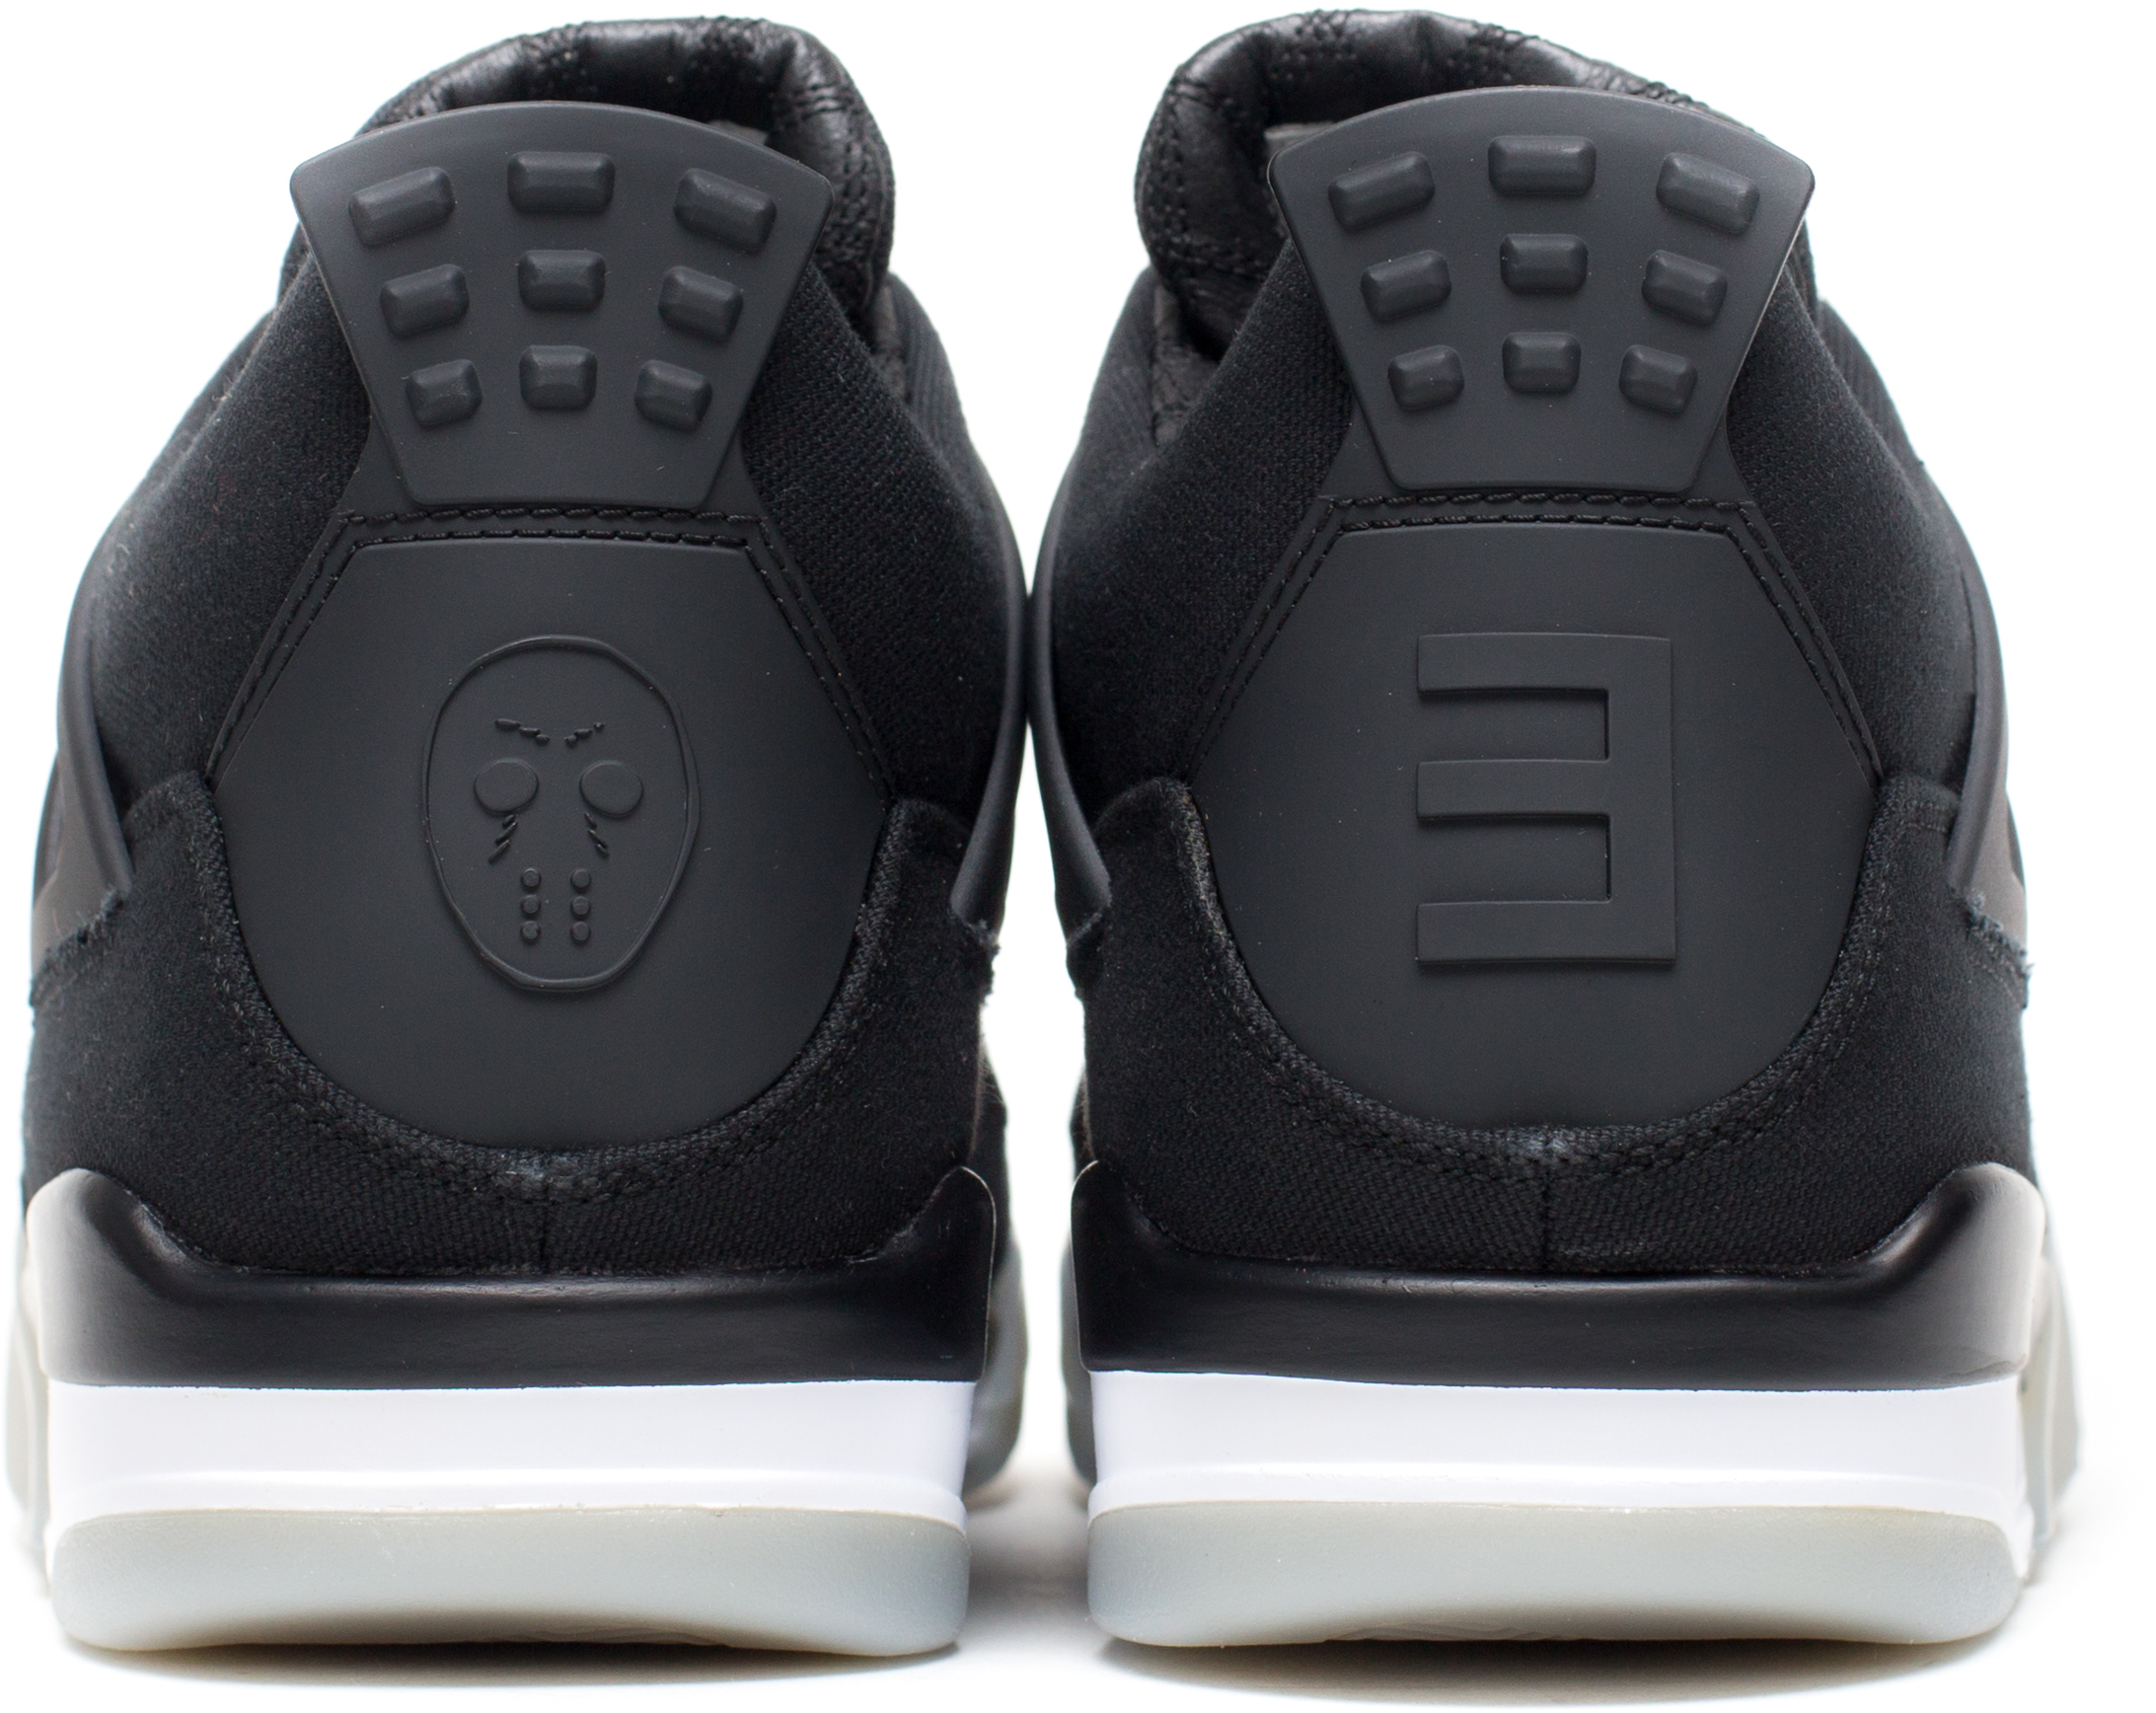 reputable site 745a2 e6c5f air jordan 4 x eminem x carhartt